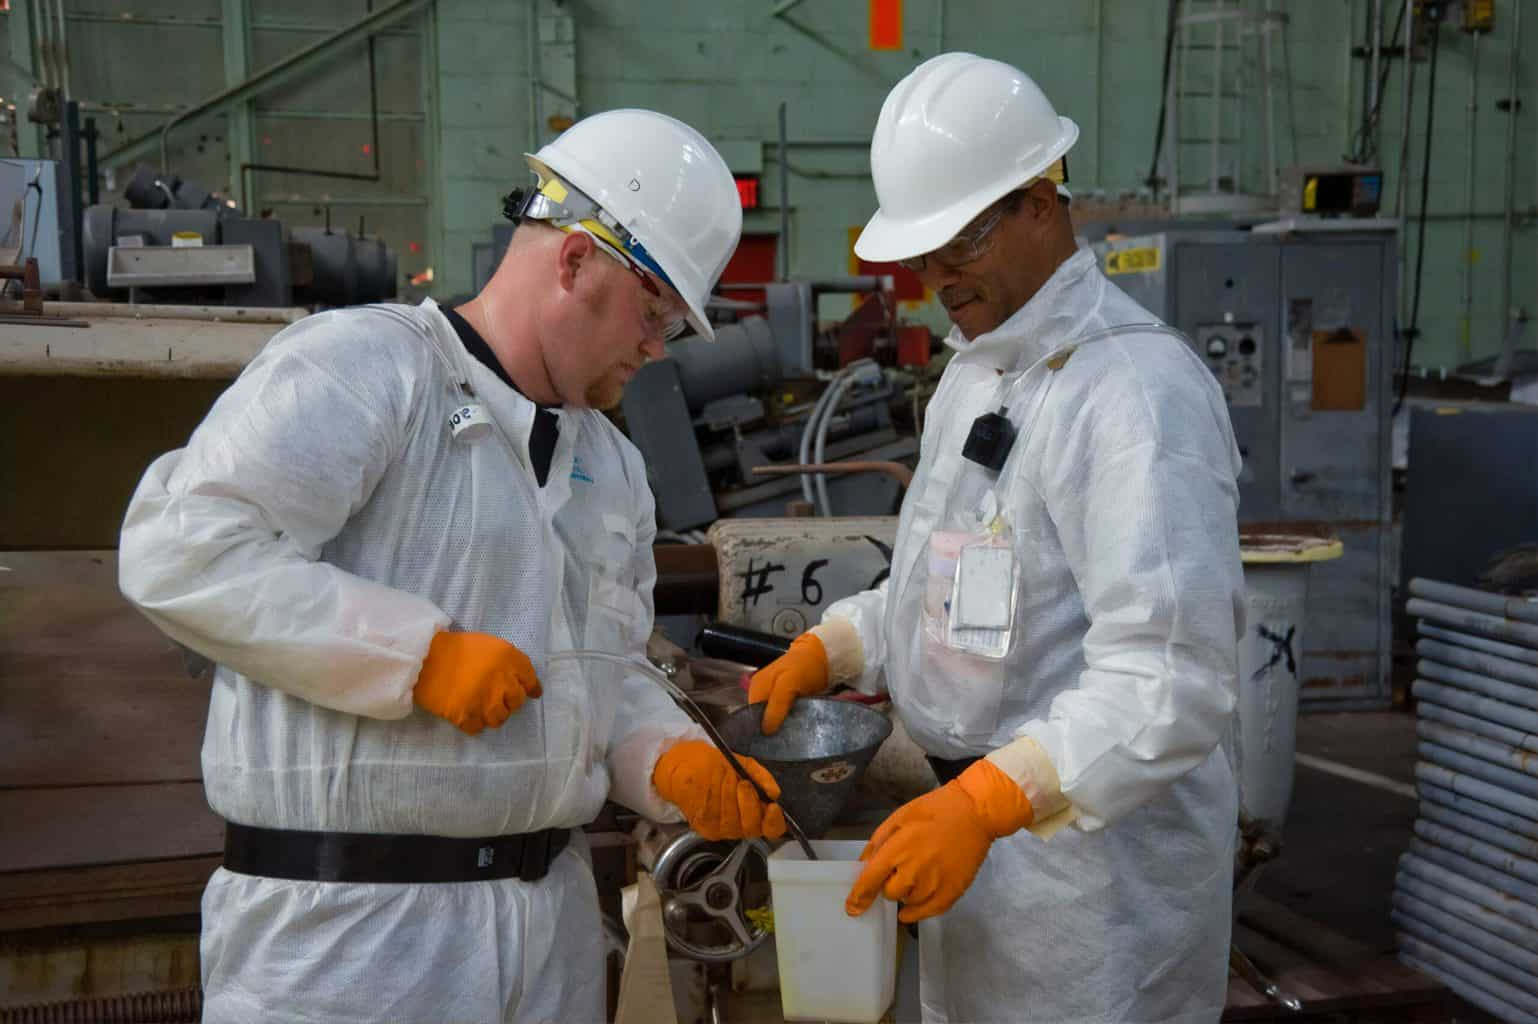 Two men with protective equipment and gloves holding a metal